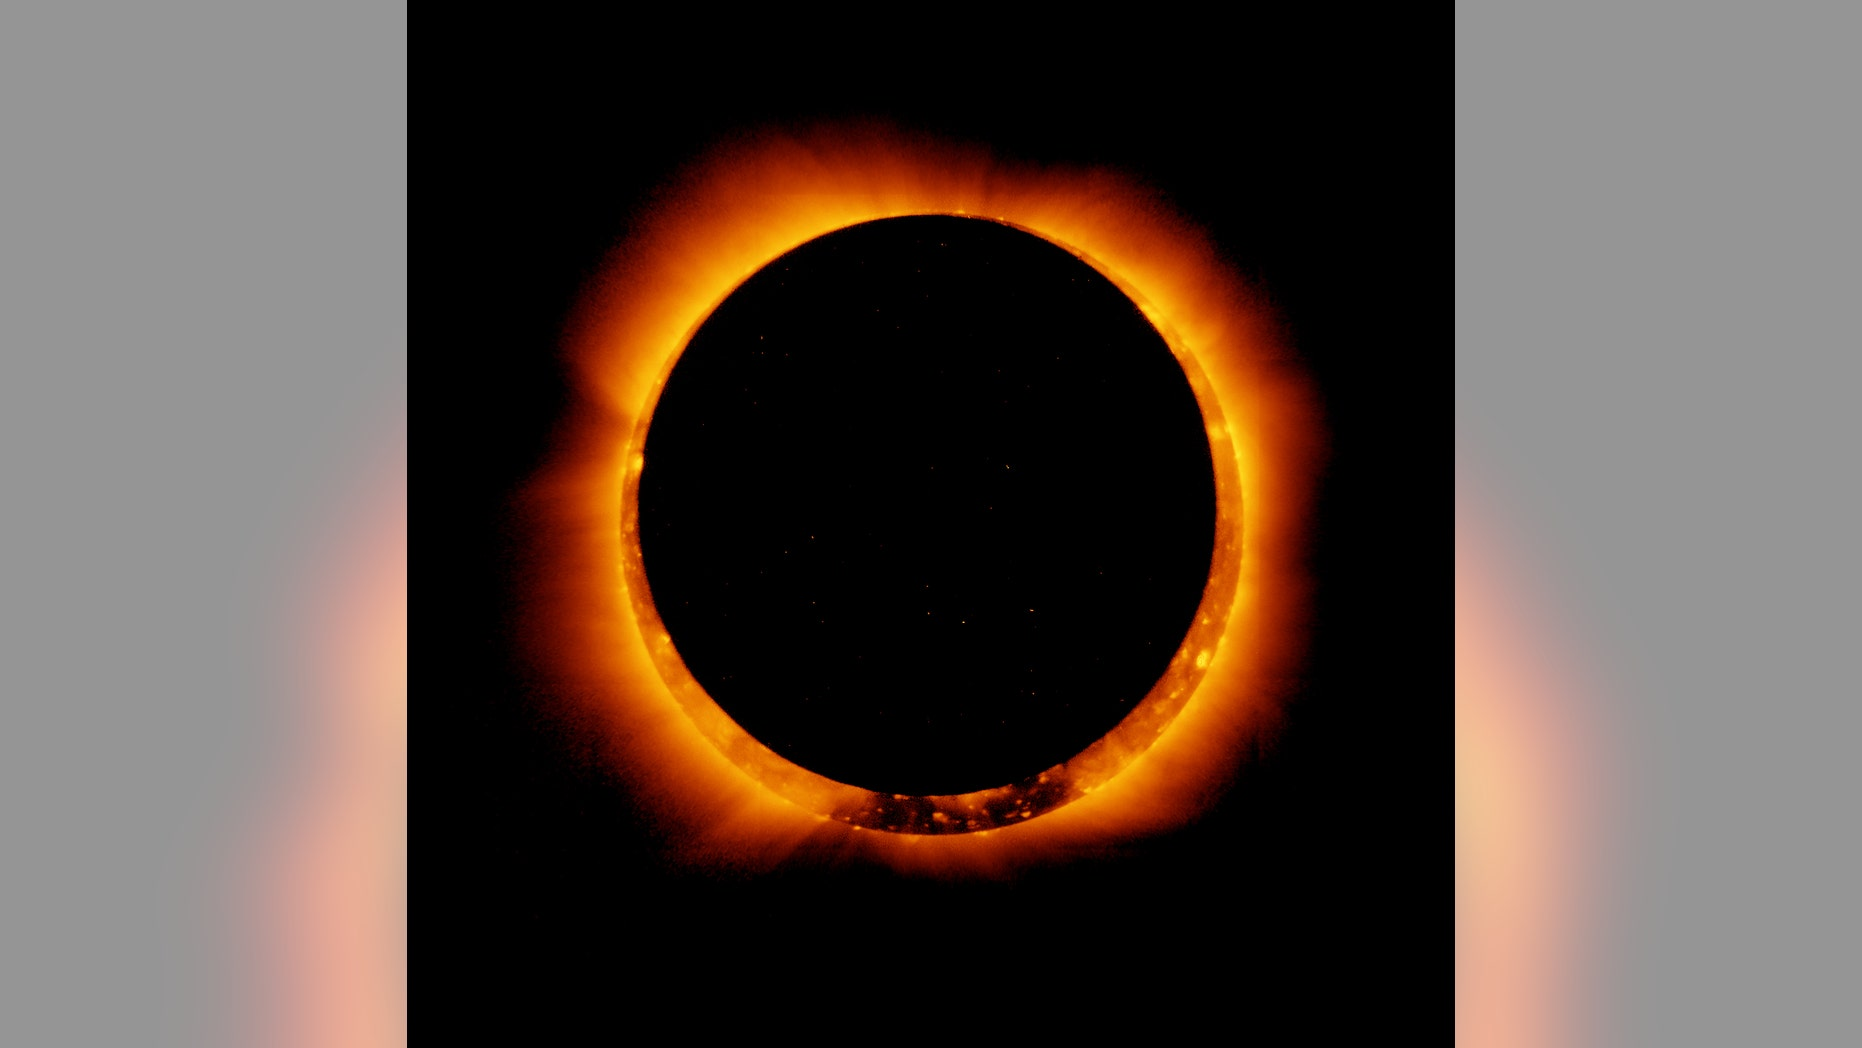 Eclipse models suggest that the sun's photosphere is slightly larger than the value commonly used. Eclipse measurements could help determine for sure. Here, an annular eclipse is visible.